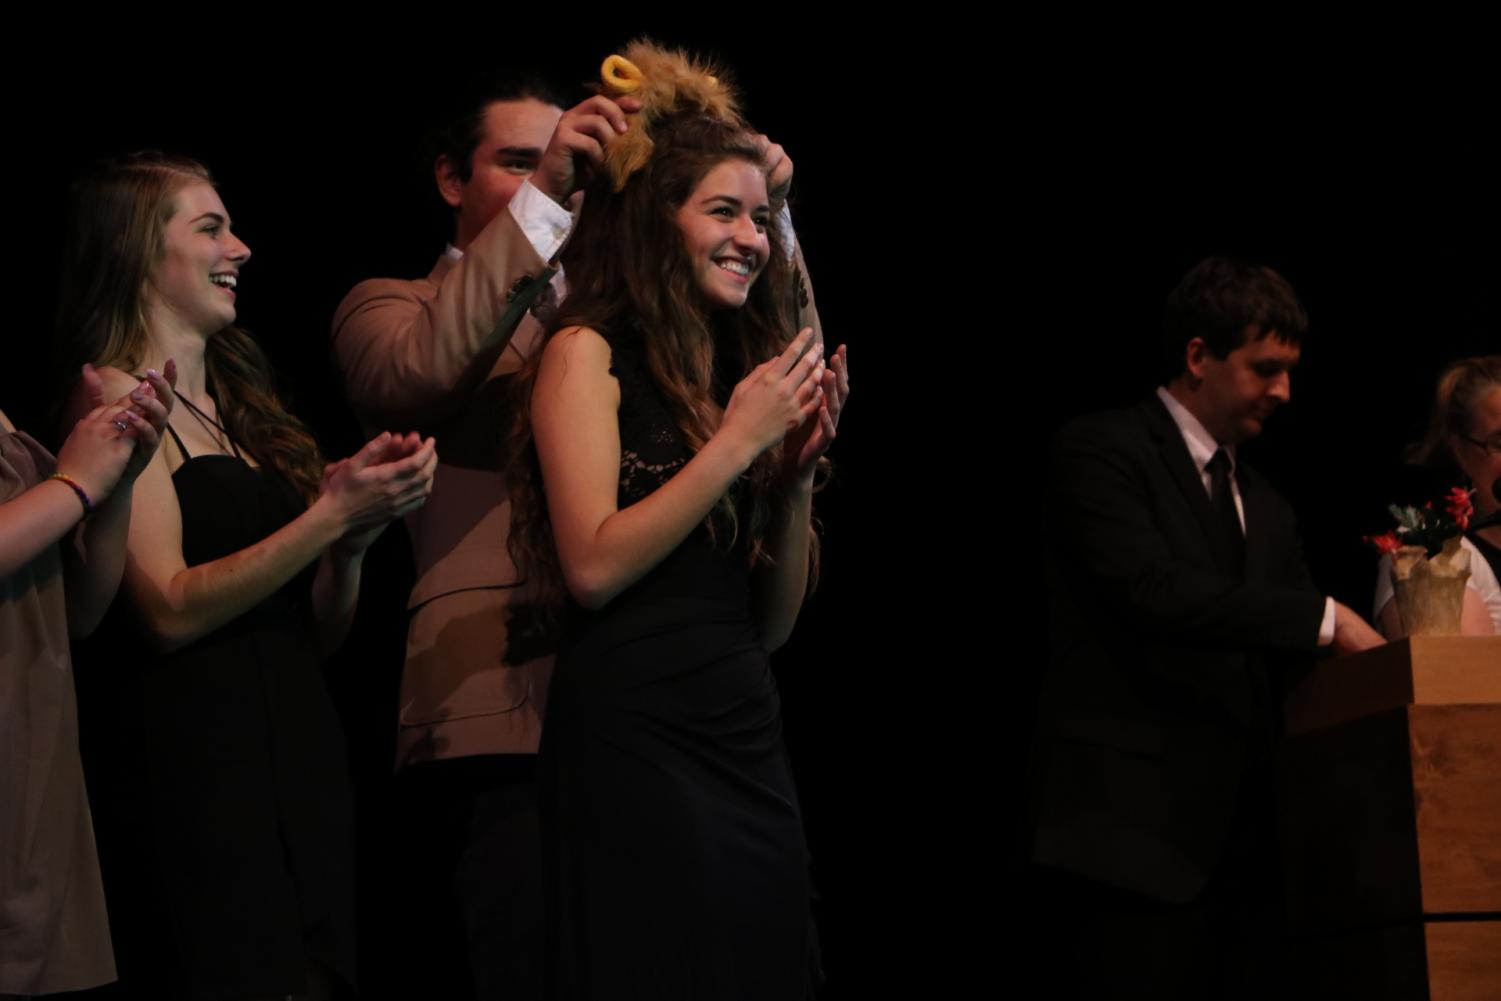 At the end of the pageant on Nov. 20, senior Faith Varga accepts the lions ears for Ms. West Linn. Varga was one of 11 students who raised over $2,900 for Clackamas County Coalition for Suicide Prevention.